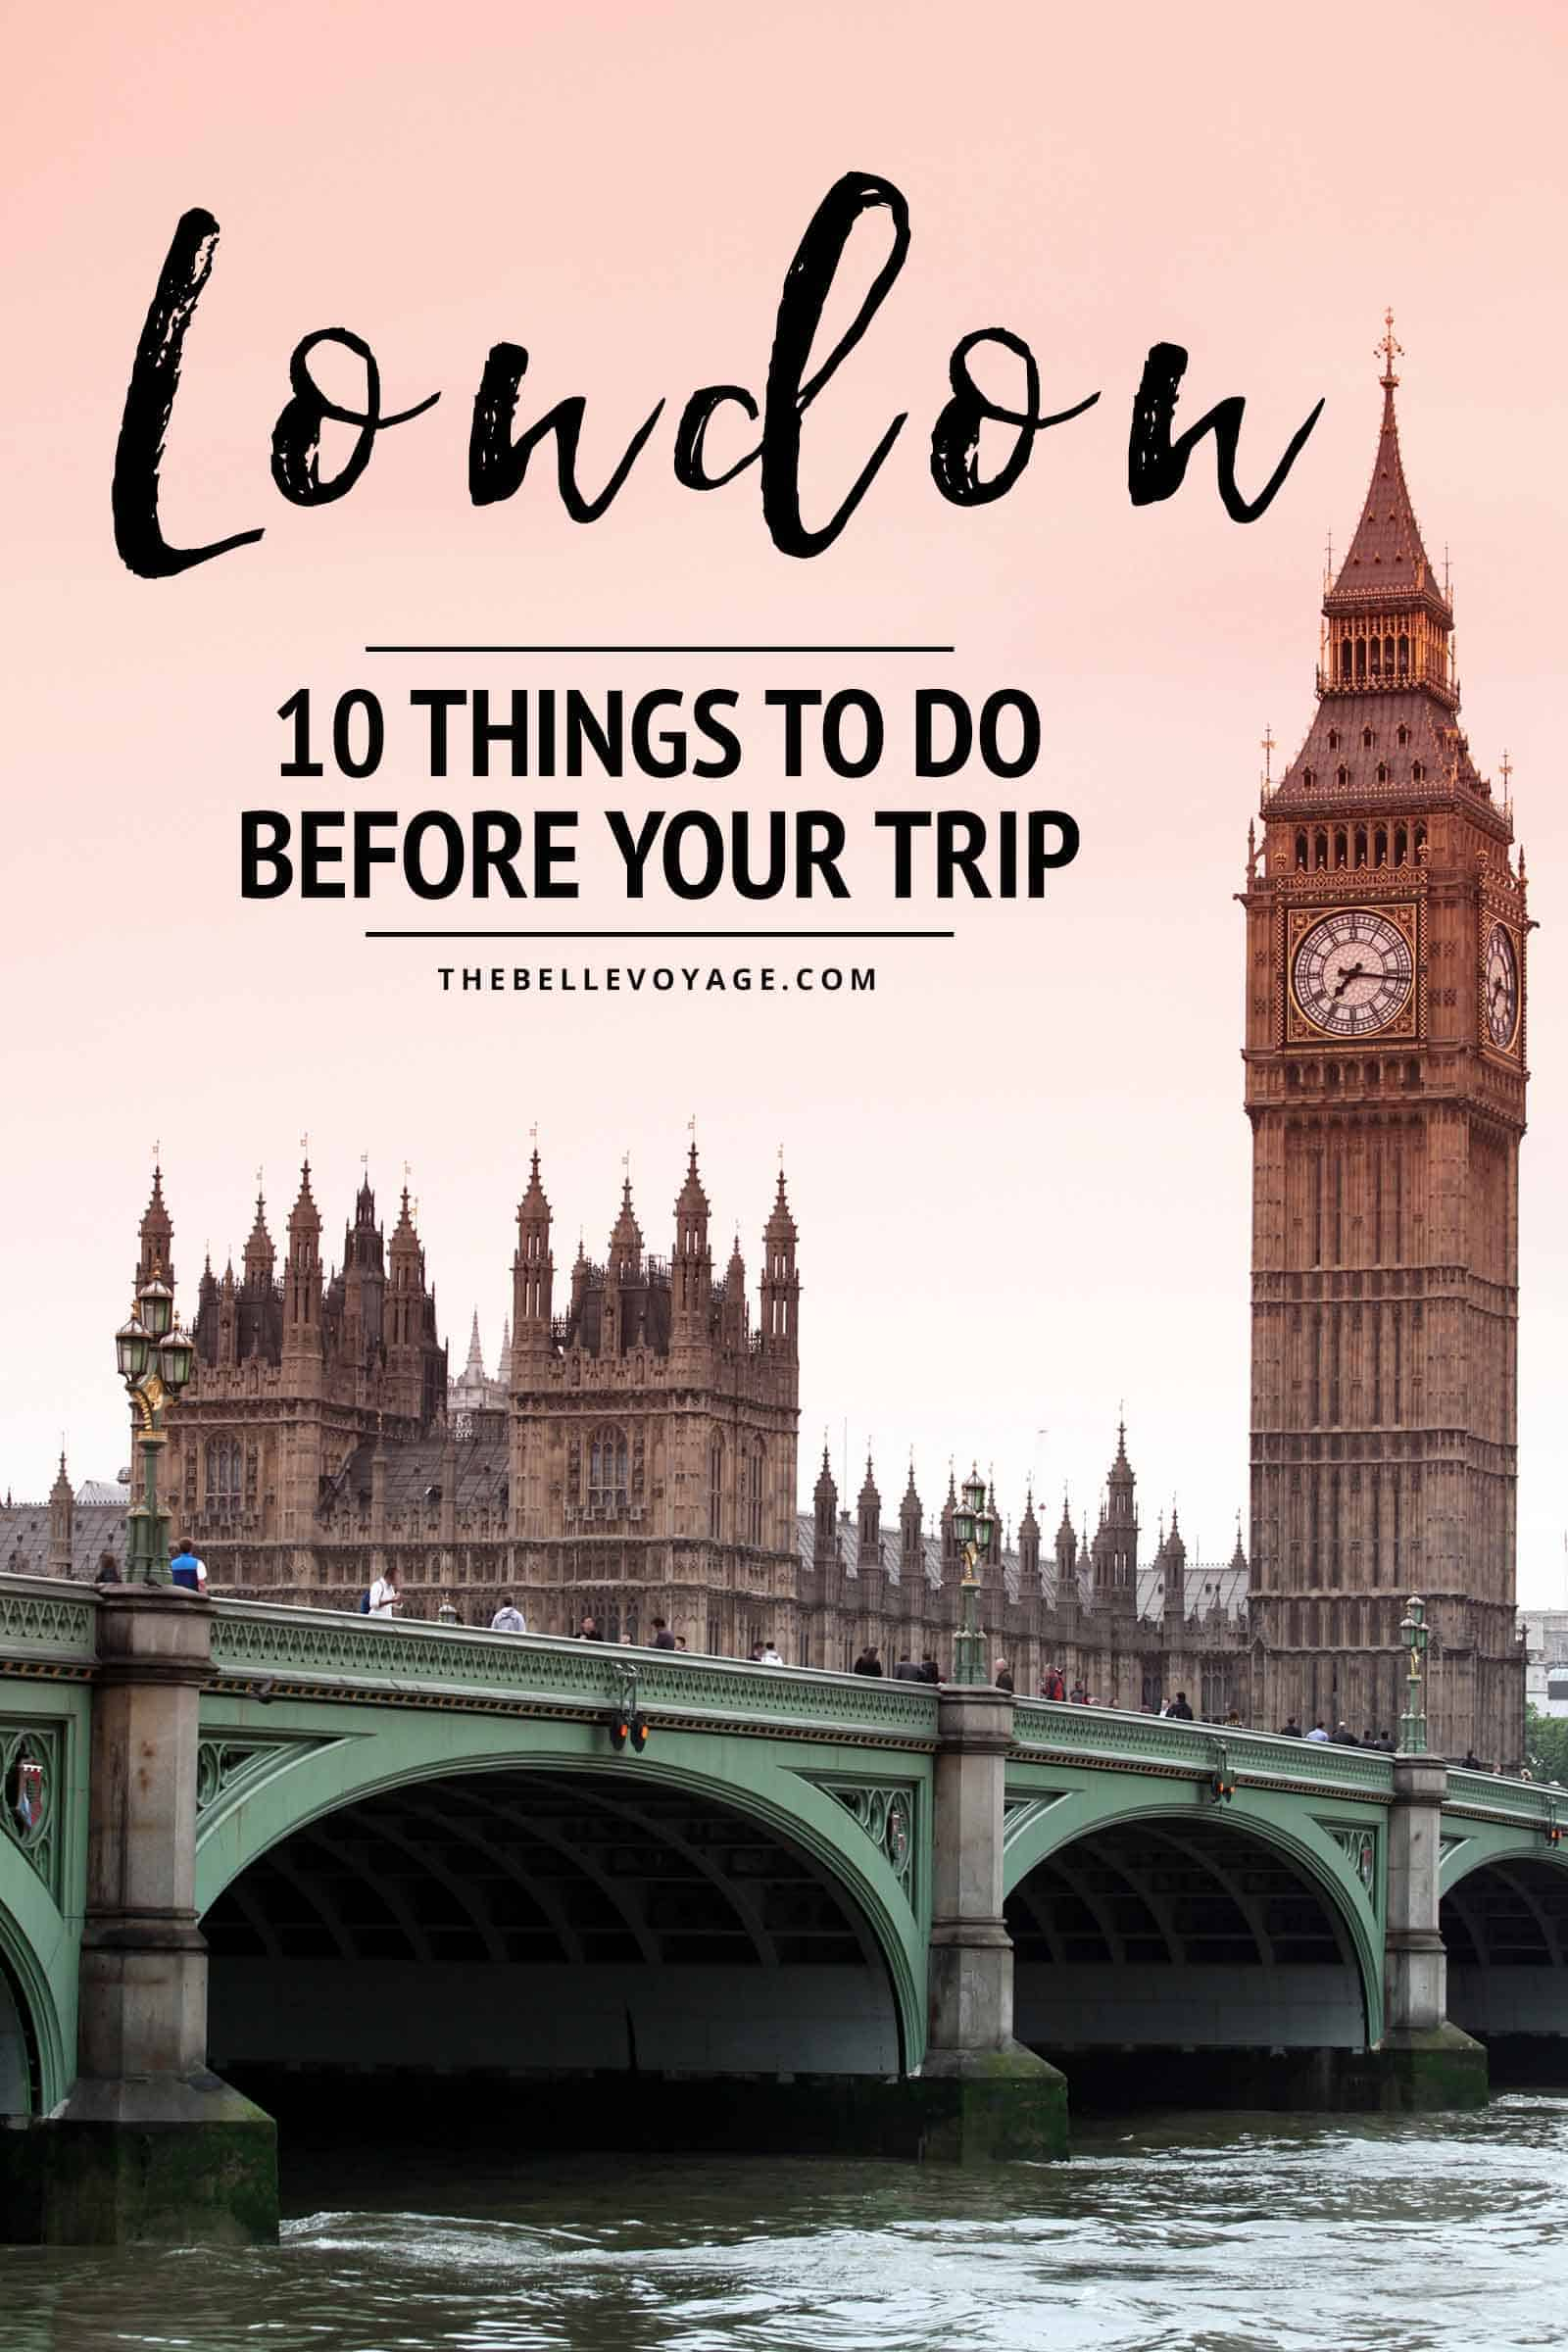 checklist for traveling to London things to know